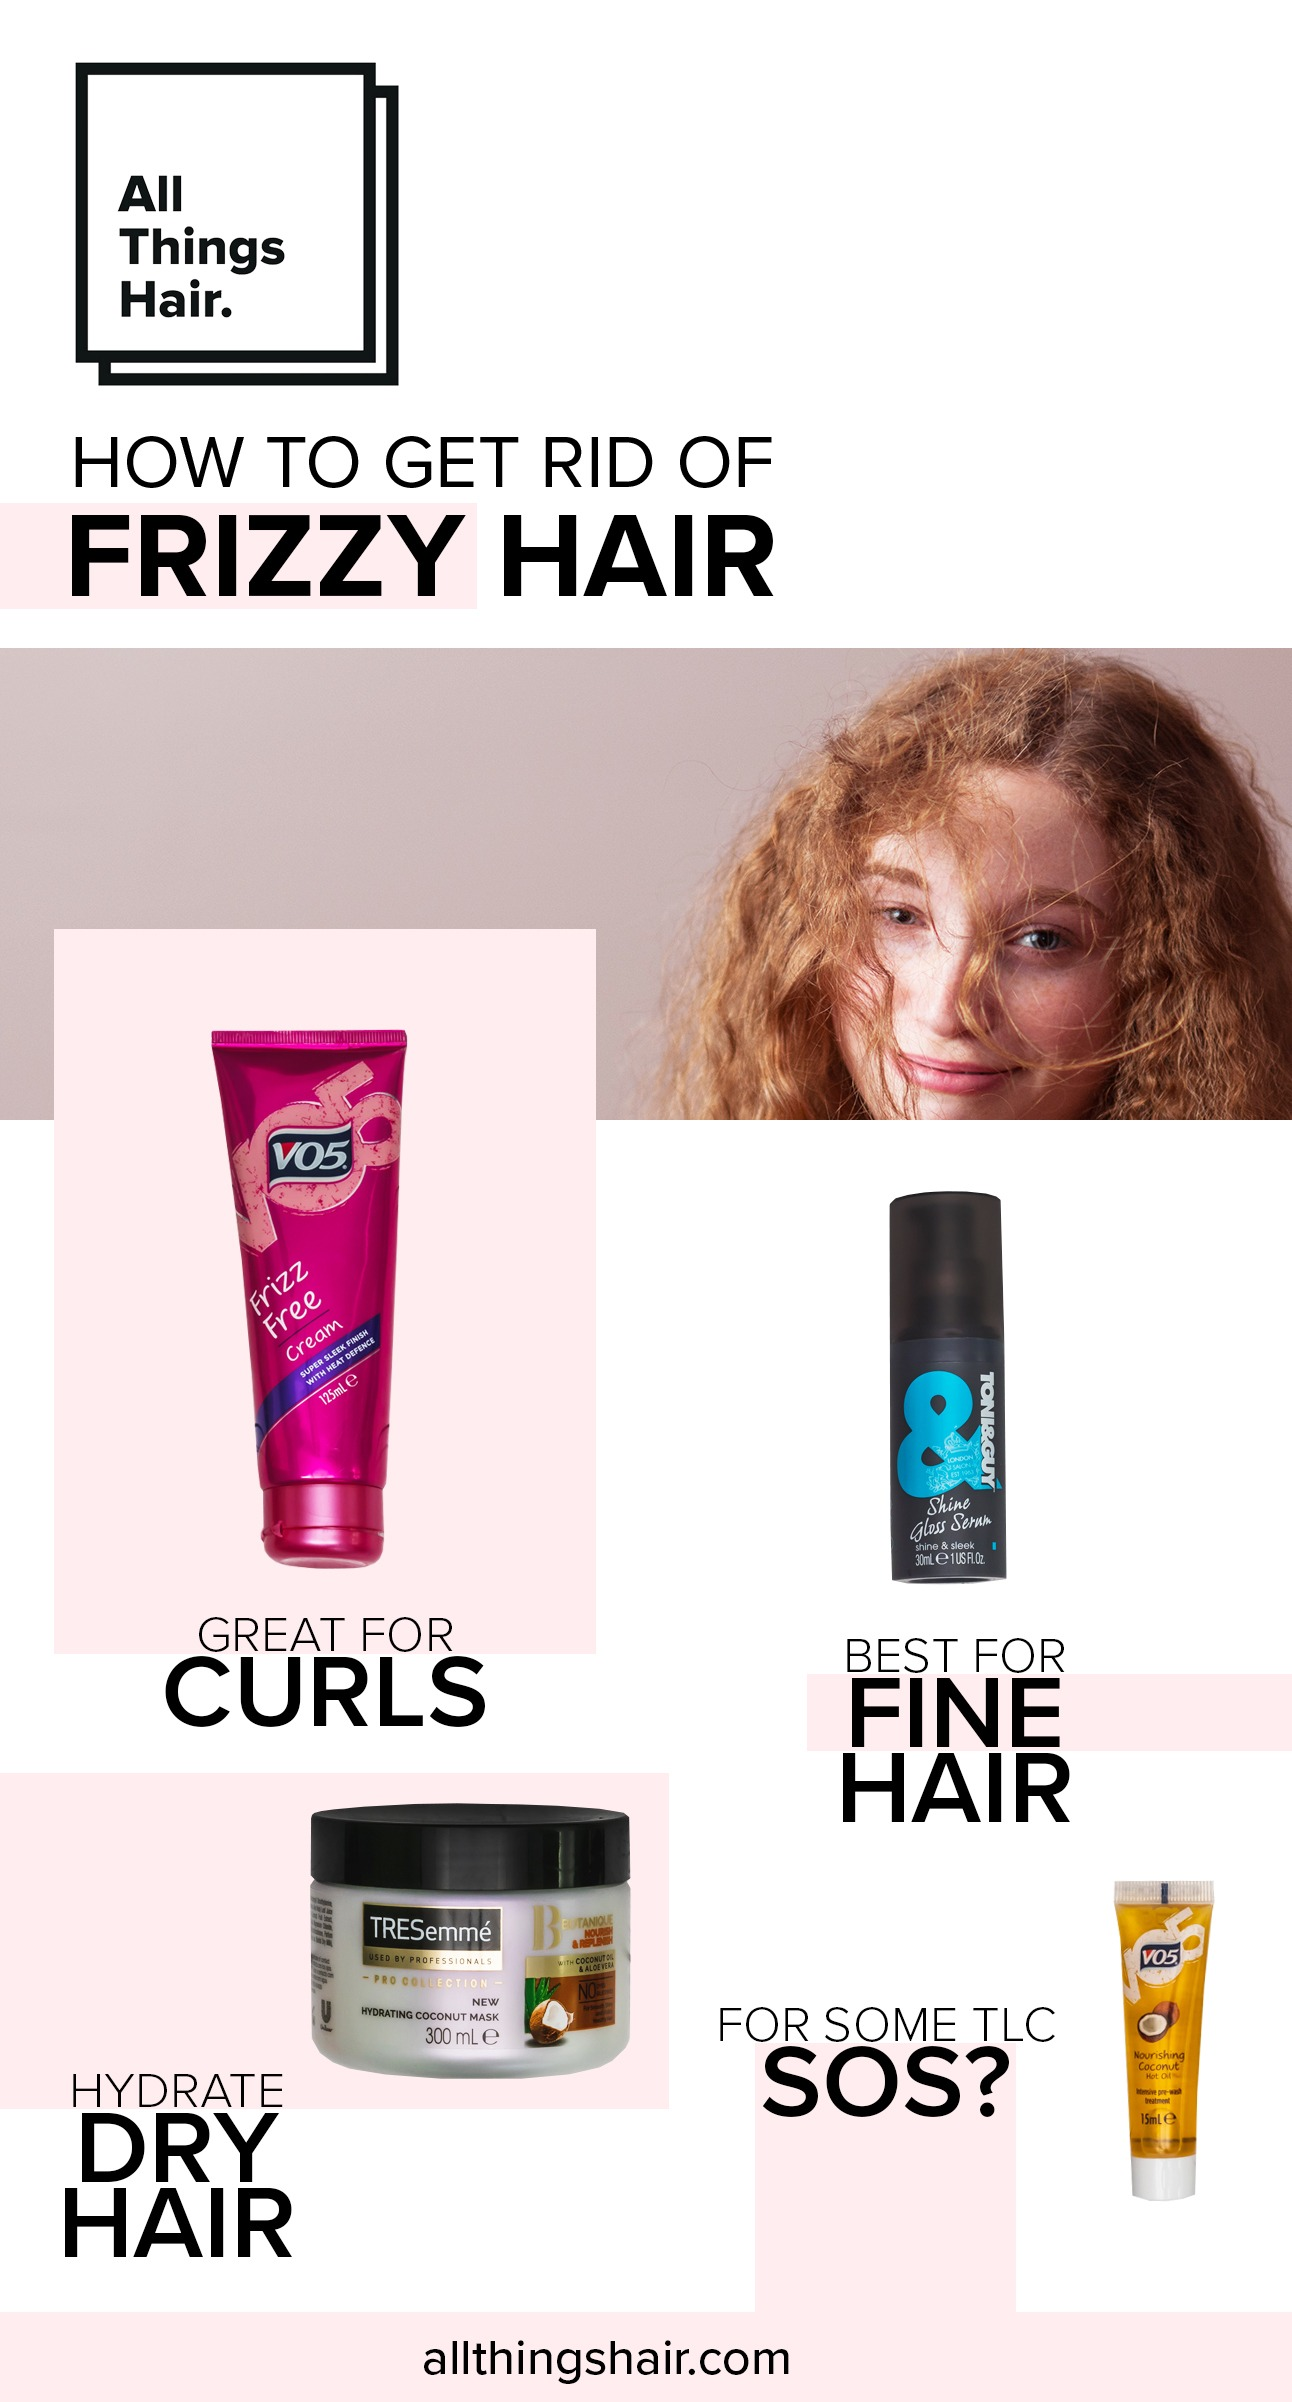 Frizzy hair infographic by all things hair uk: Shot of different hair products that help tame frizz